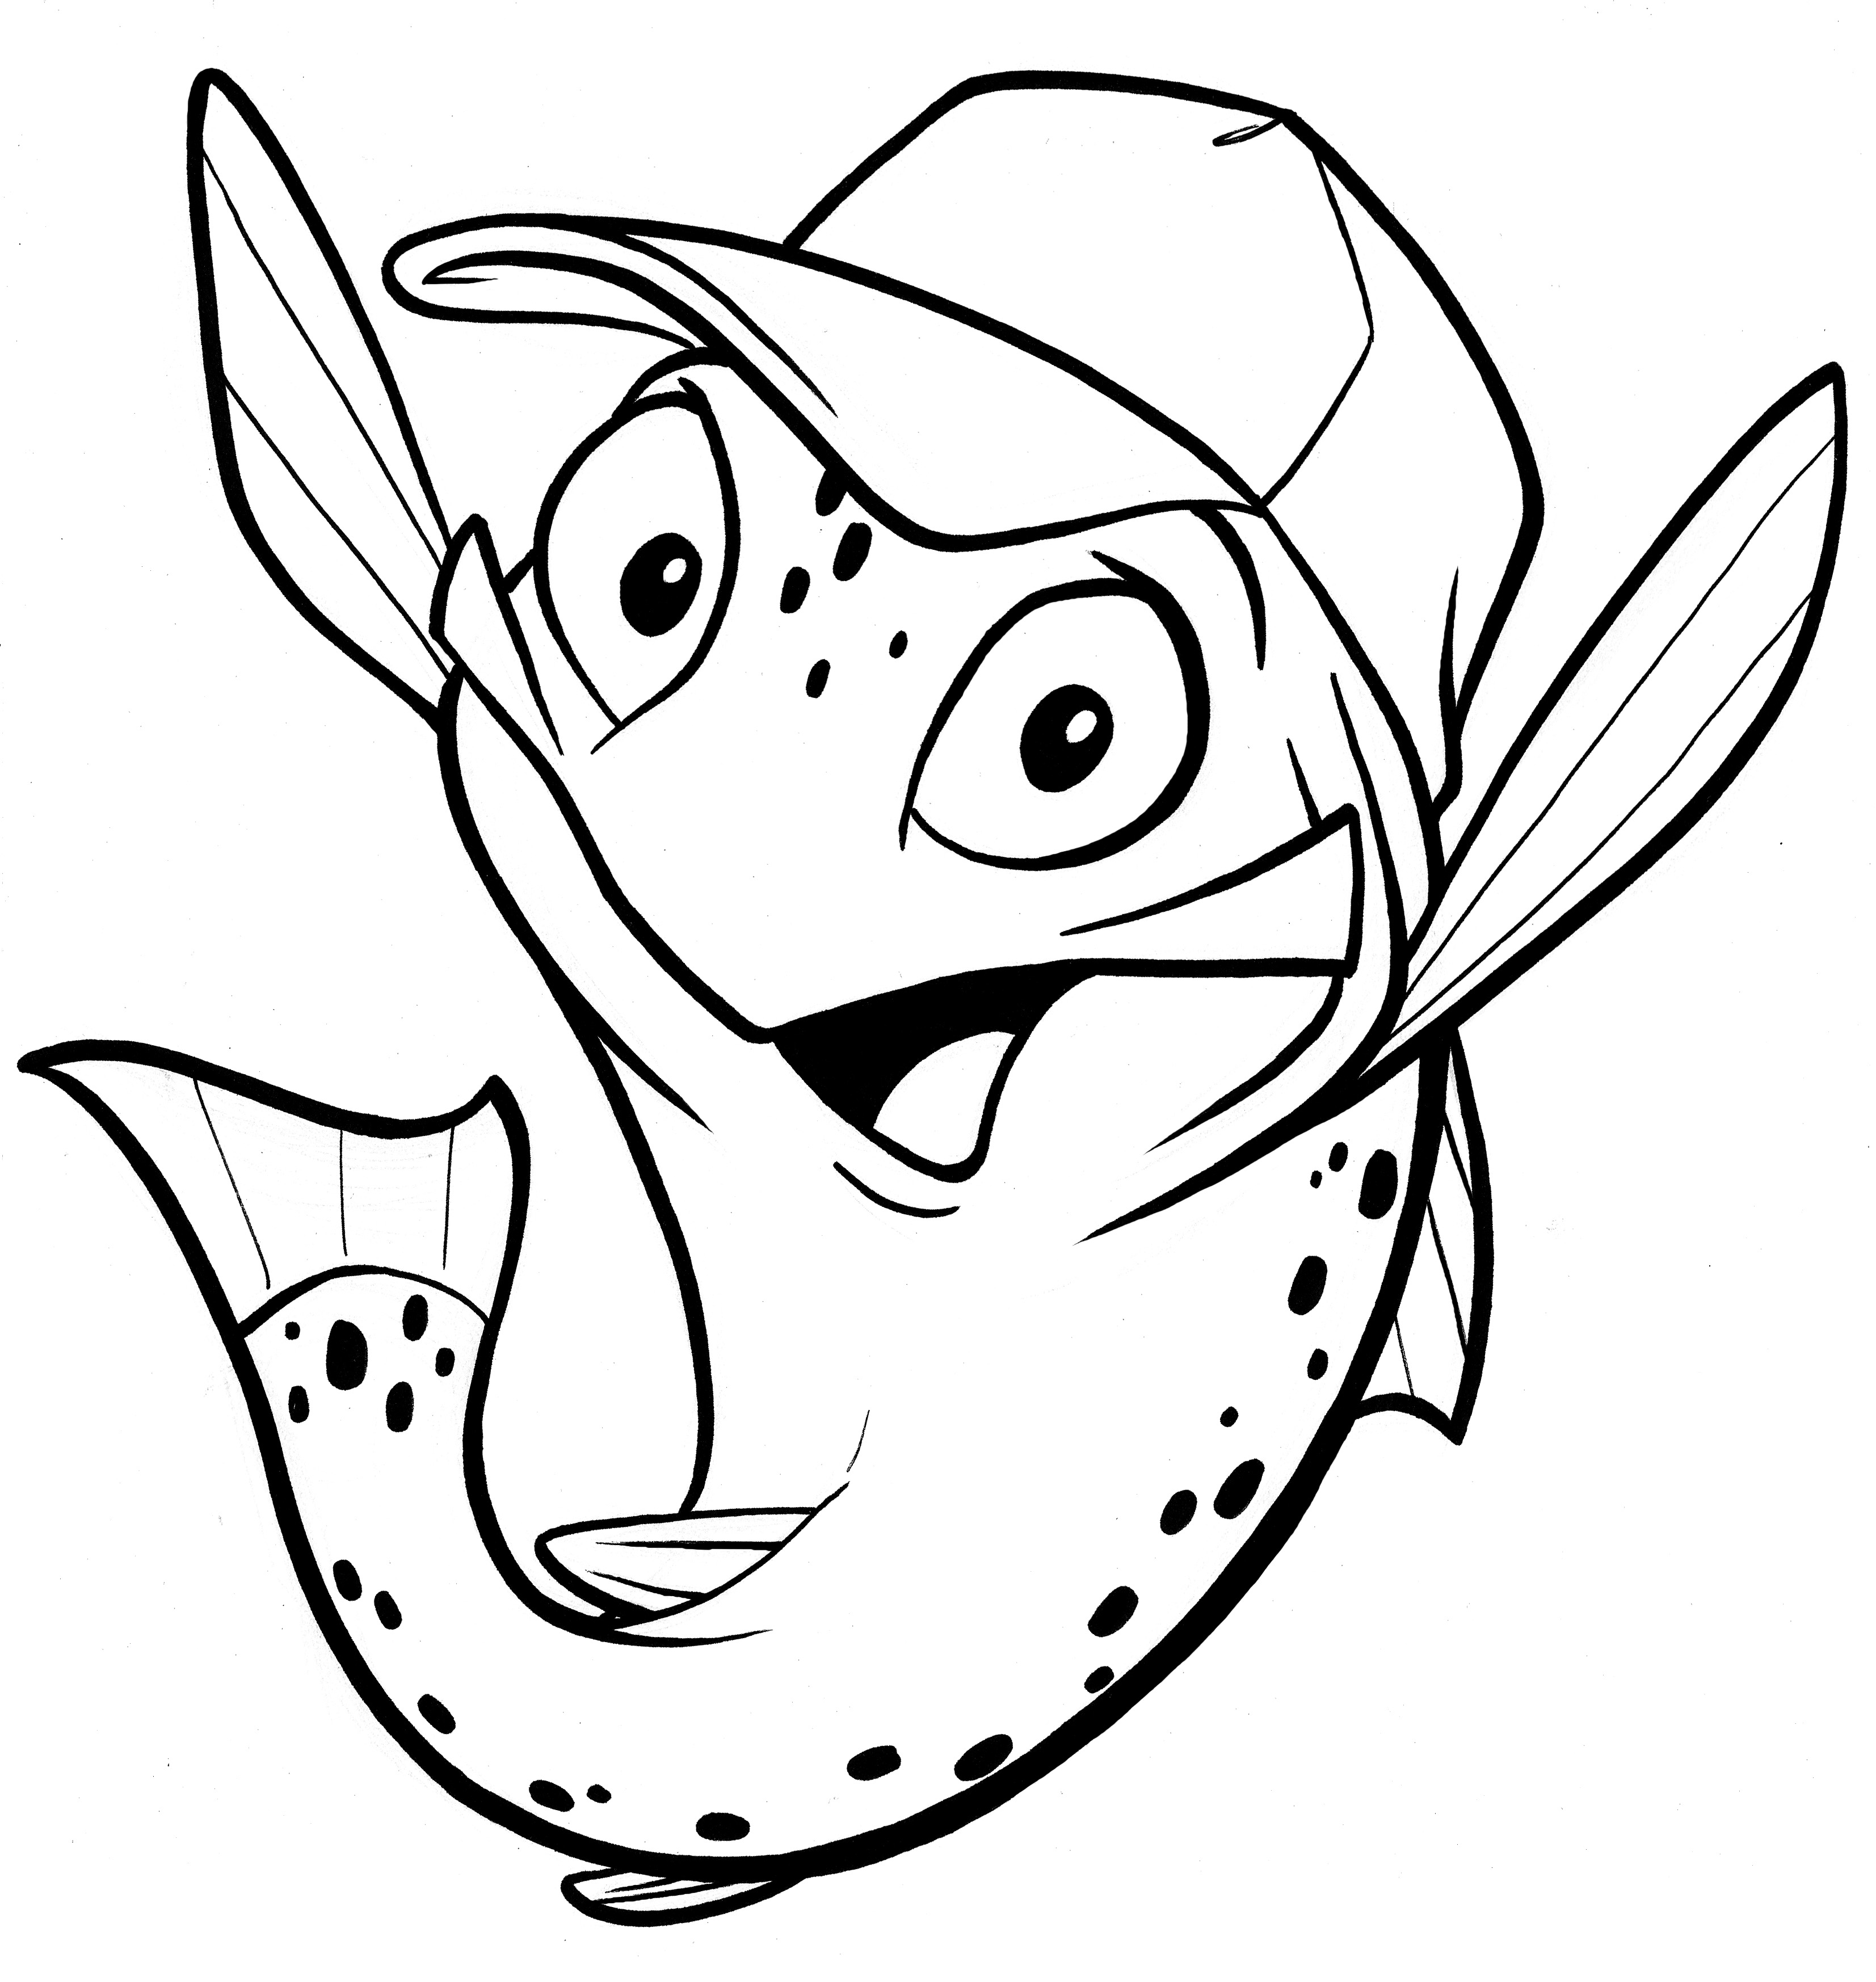 This is an image of Clean Fish Cartoon Drawing